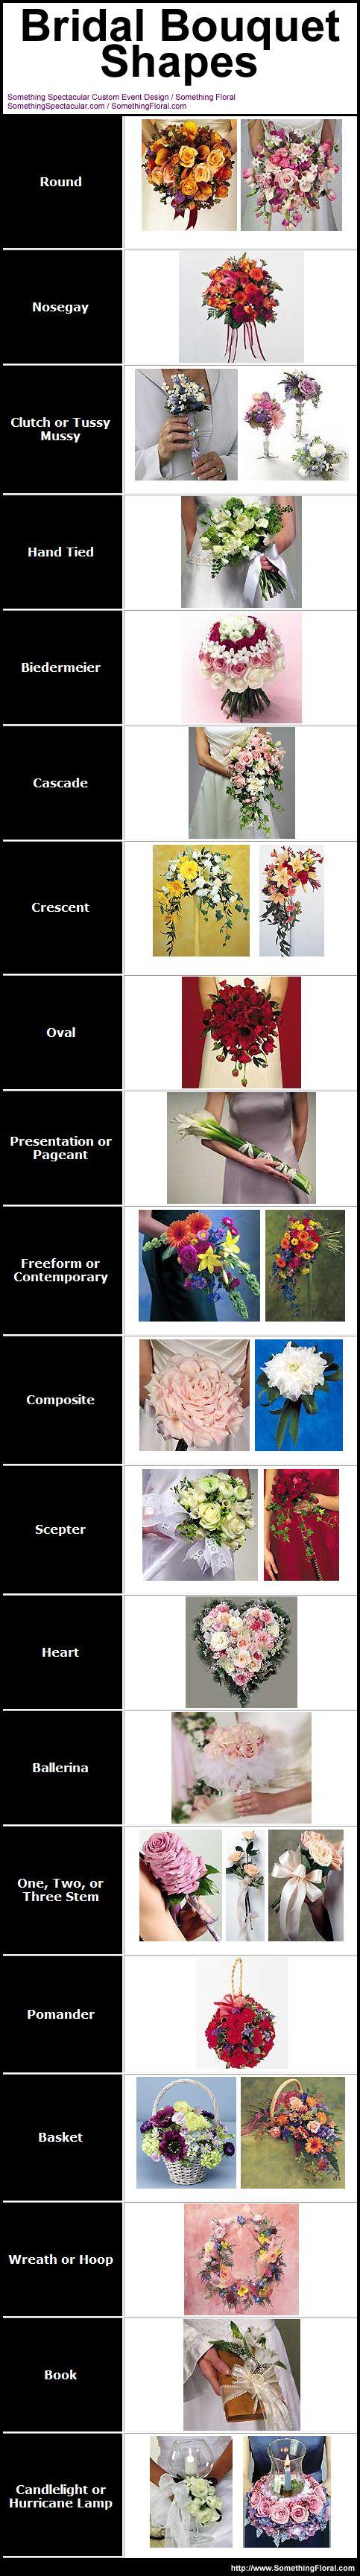 A helpful reference for brides a pictorial list of bridal bouquet